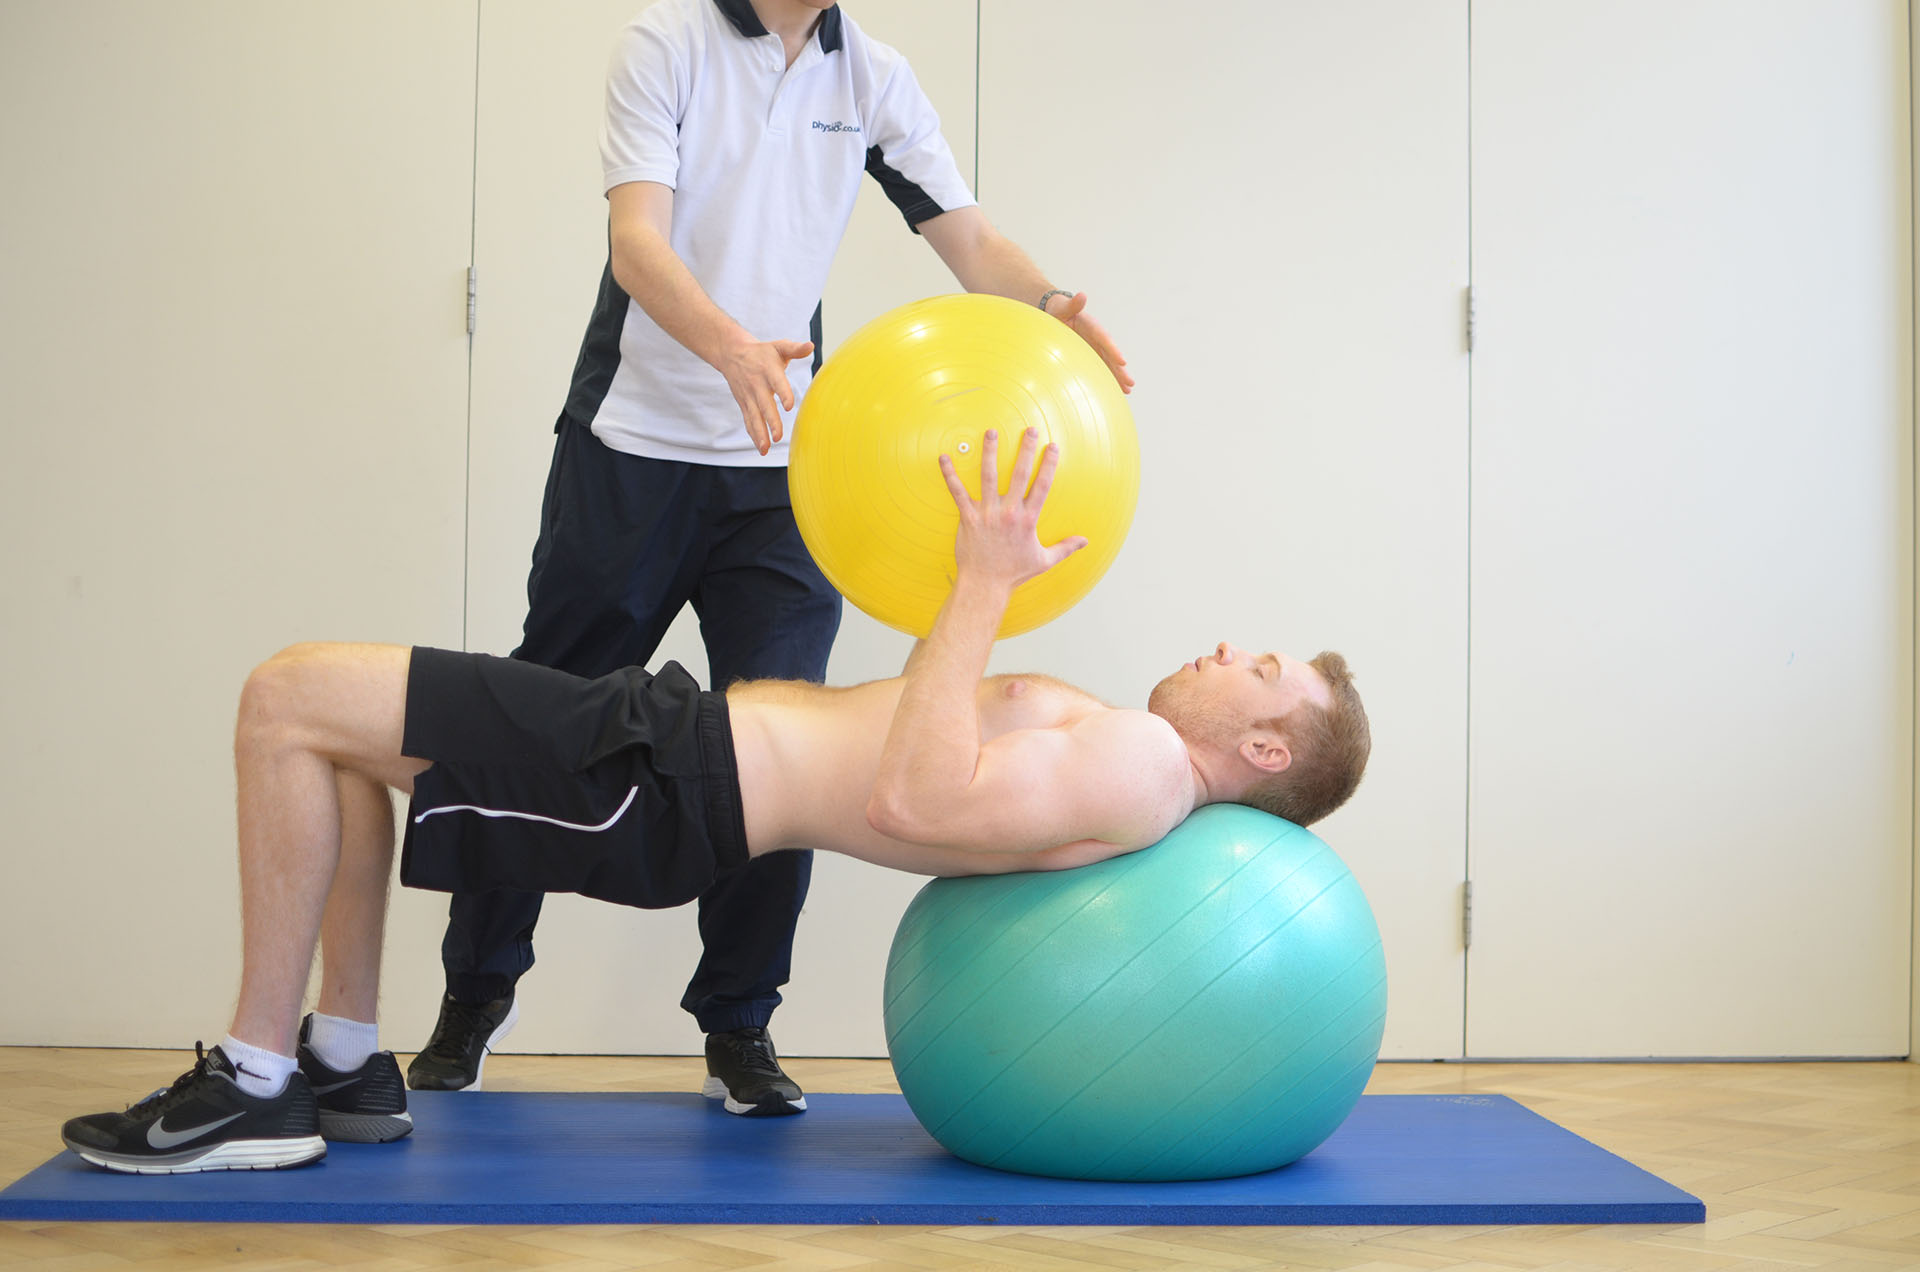 Exercise ball therapy at Manchester Physio clinic